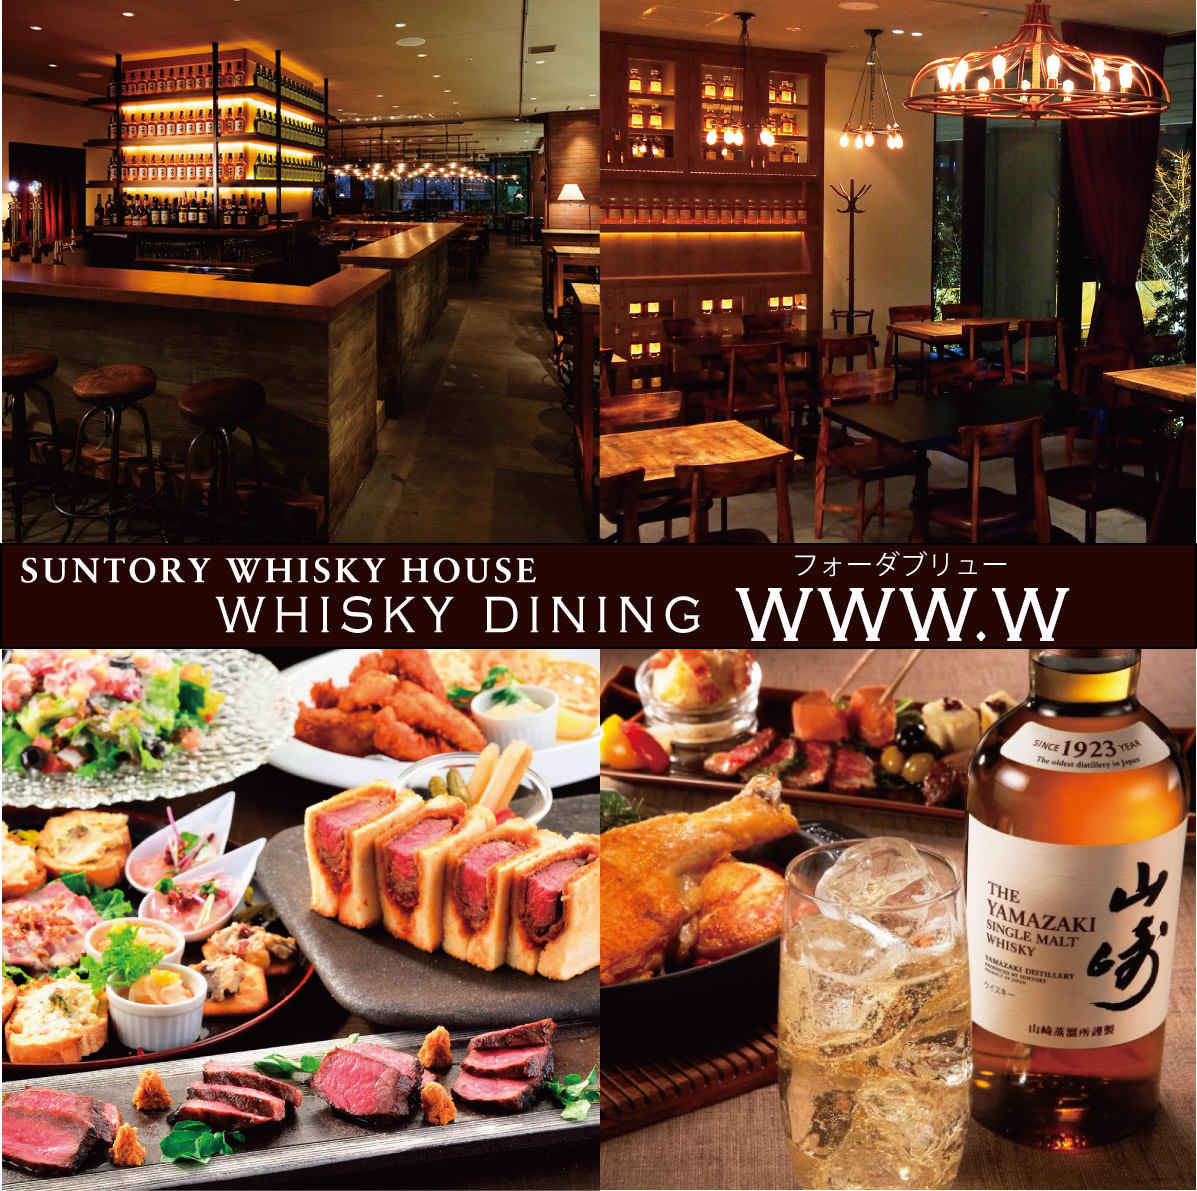 Whisky Dining WWW.Wのイメージ写真